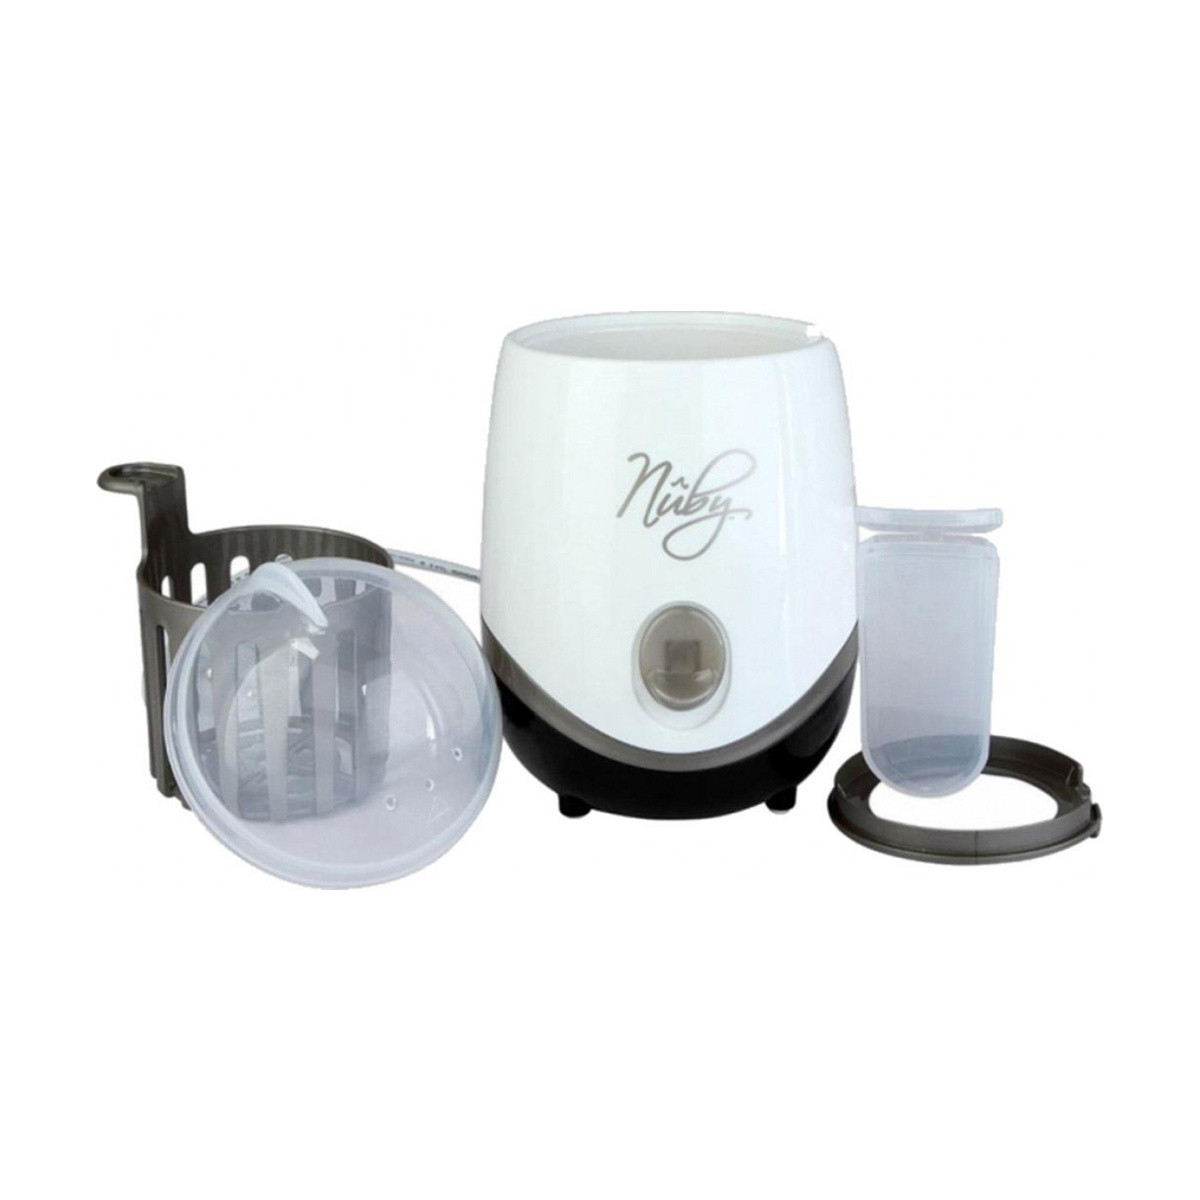 Nuby Once Touch Bottle and Food Warmer